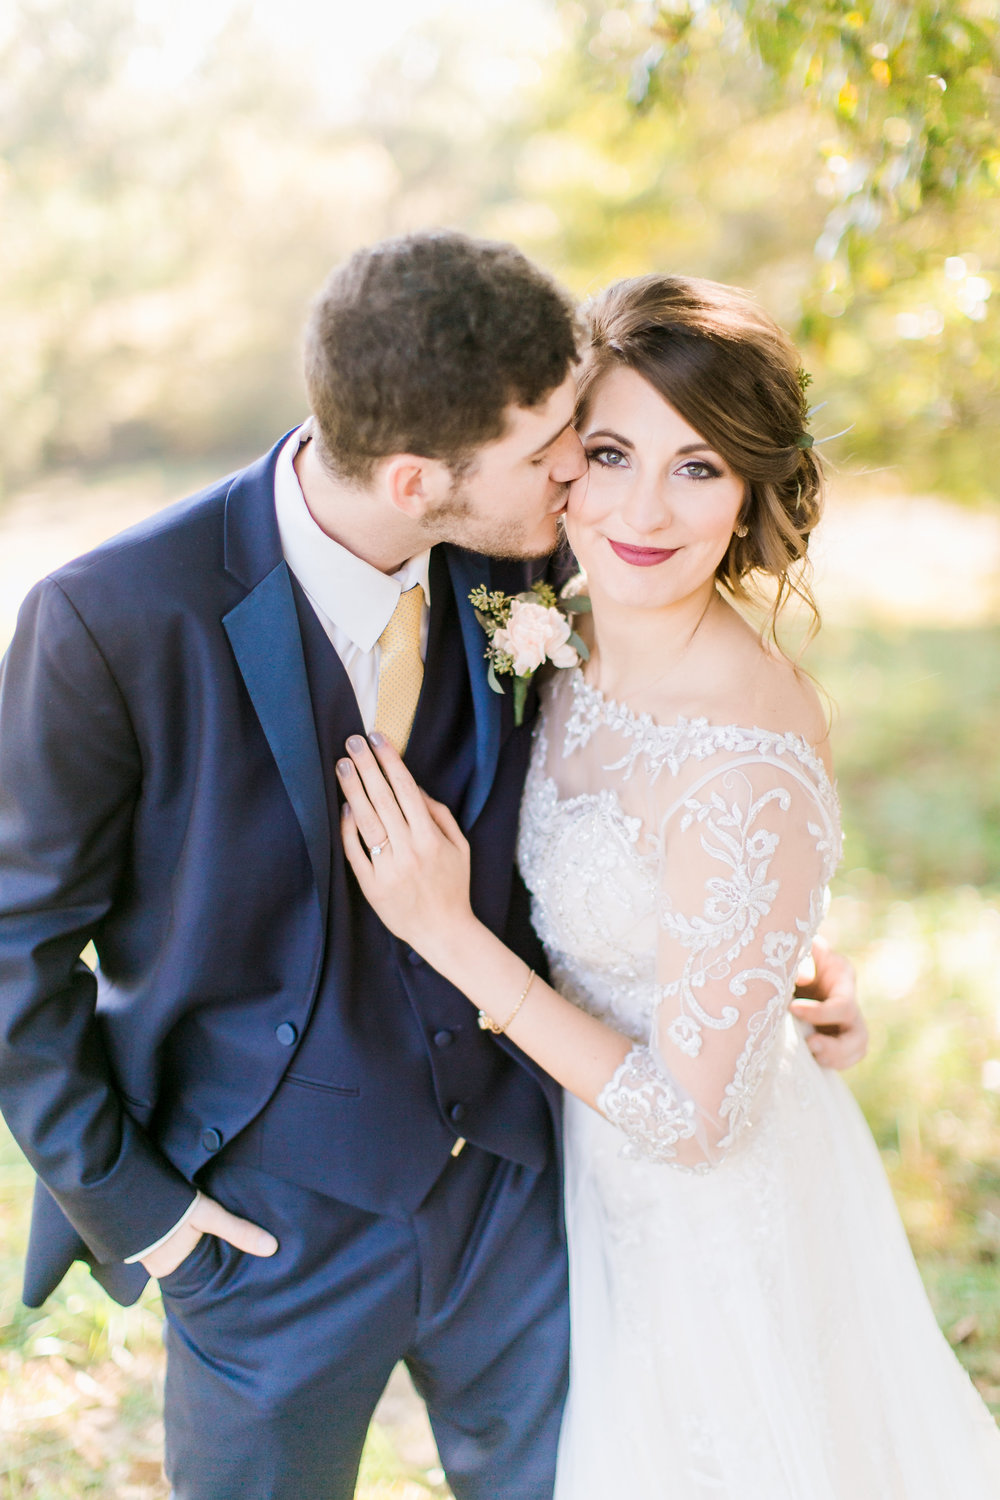 MissouriRusticWedding_StLouisWeddingPhotographer_AliciaDan_CatherineRhodesPhotography-1718-Edit.jpg